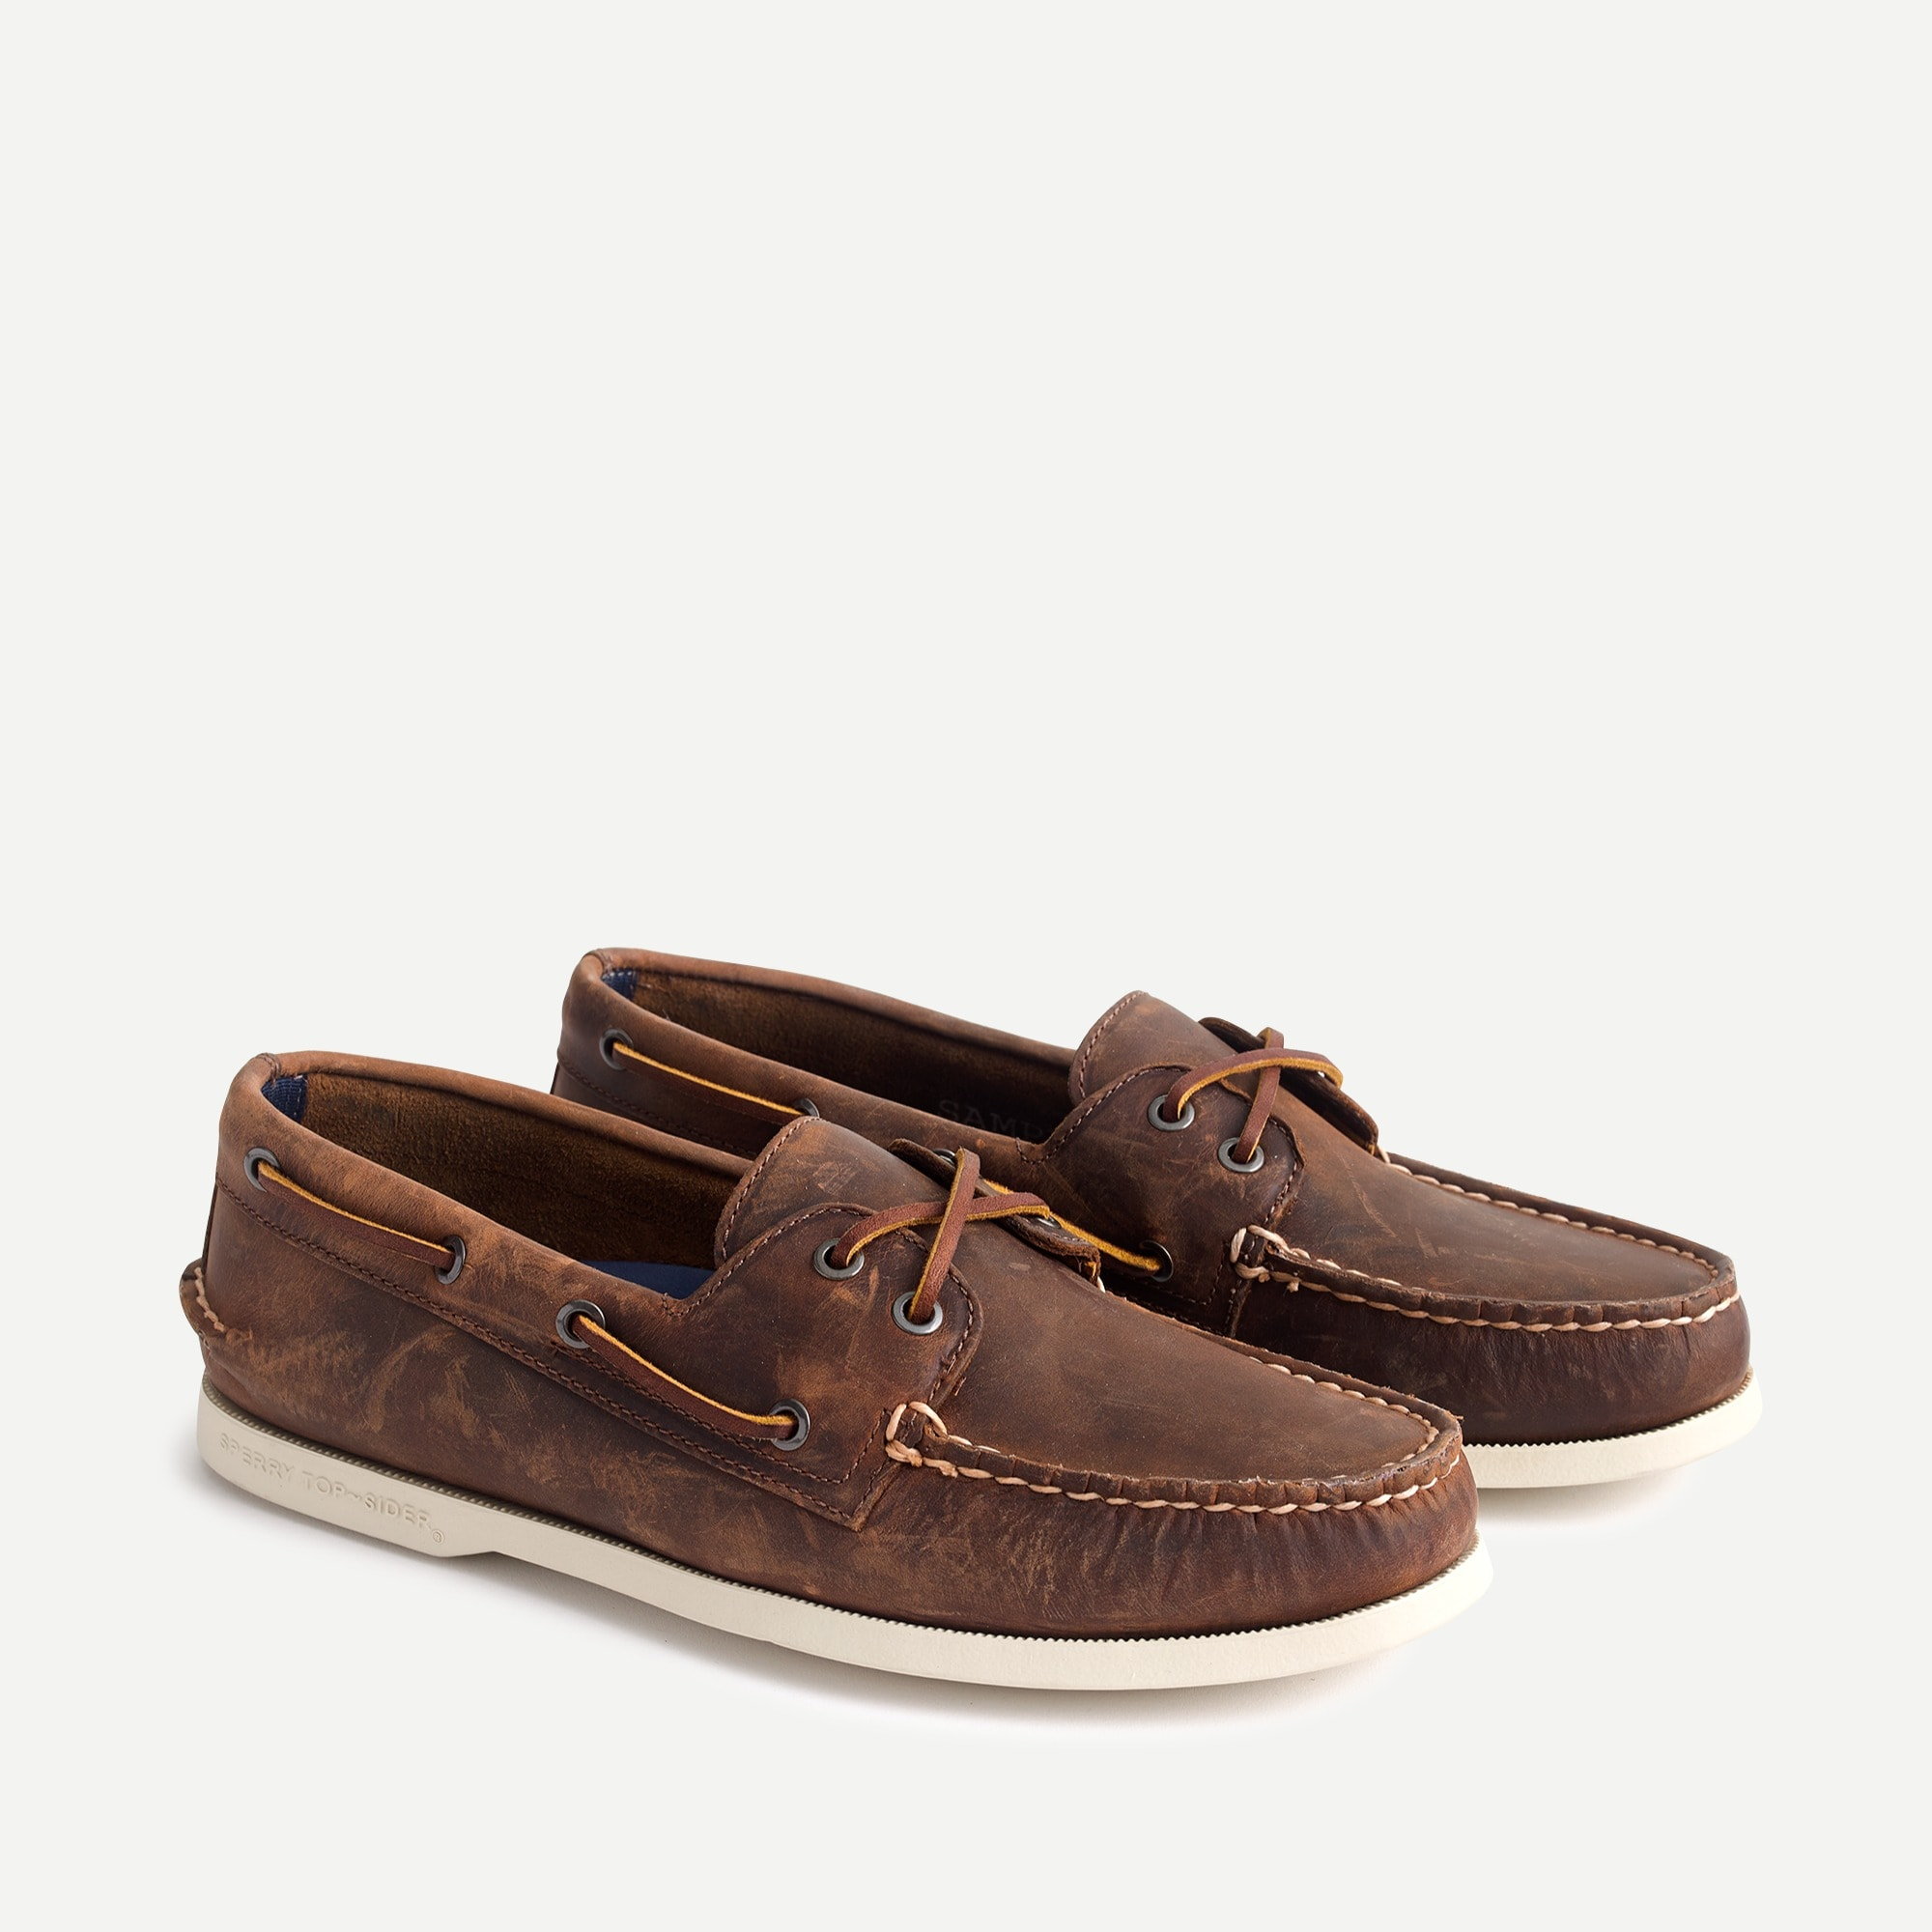 mens Sperry® for J.Crew Authentic Original 2-eye broken-in boat shoes